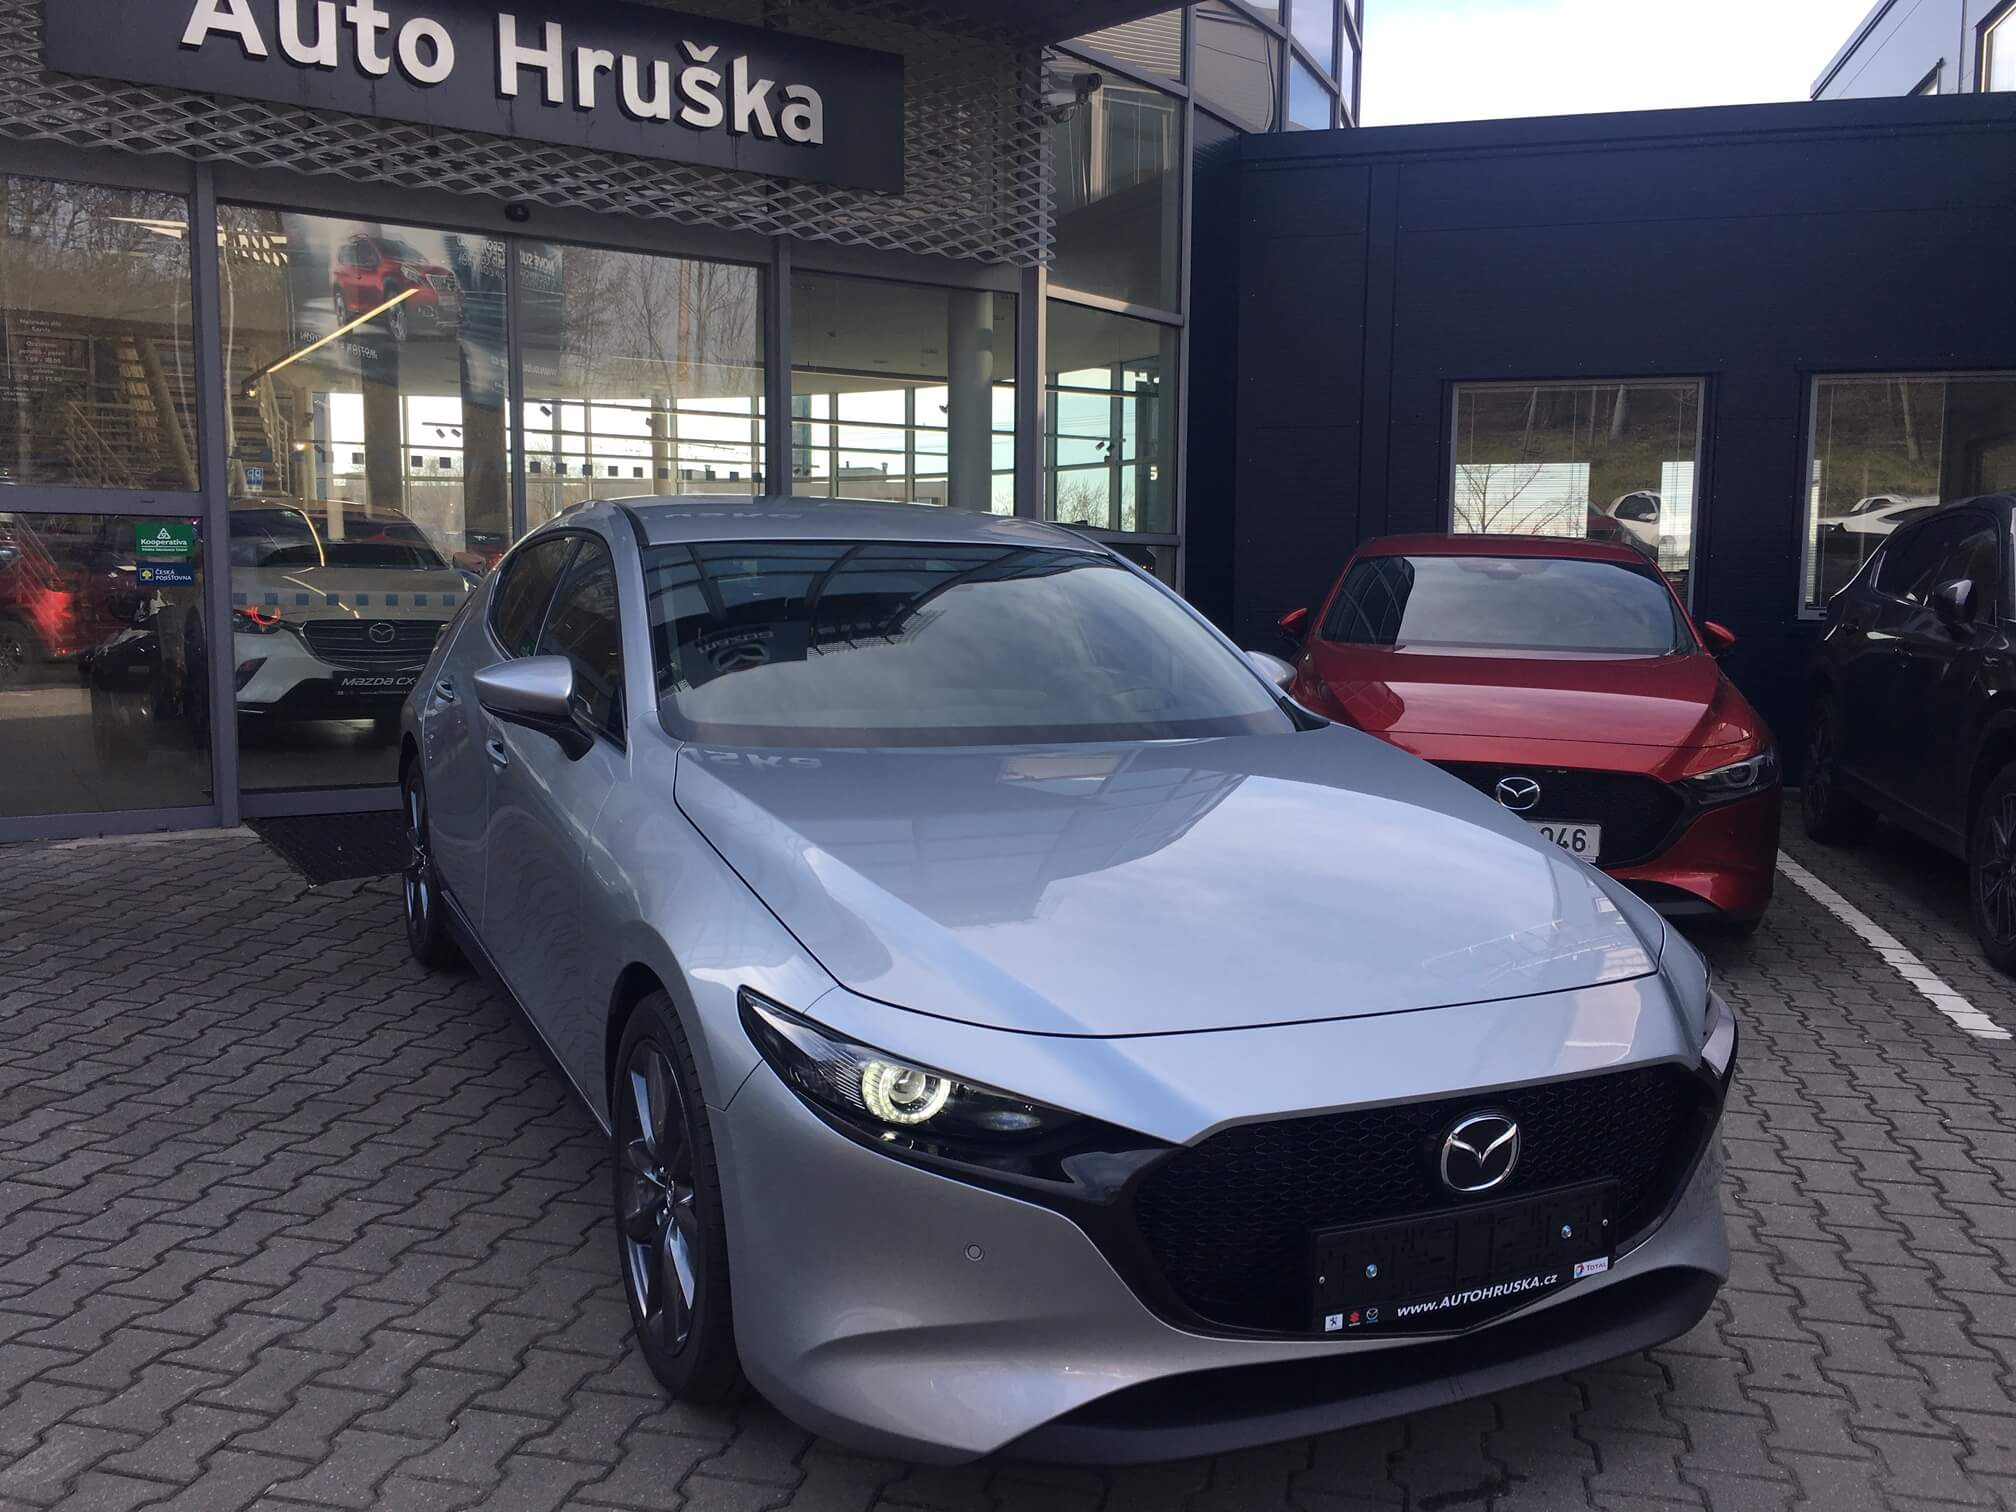 Mazda 3 2.0G MAN6 122k Plus/Safety/Sound/Style